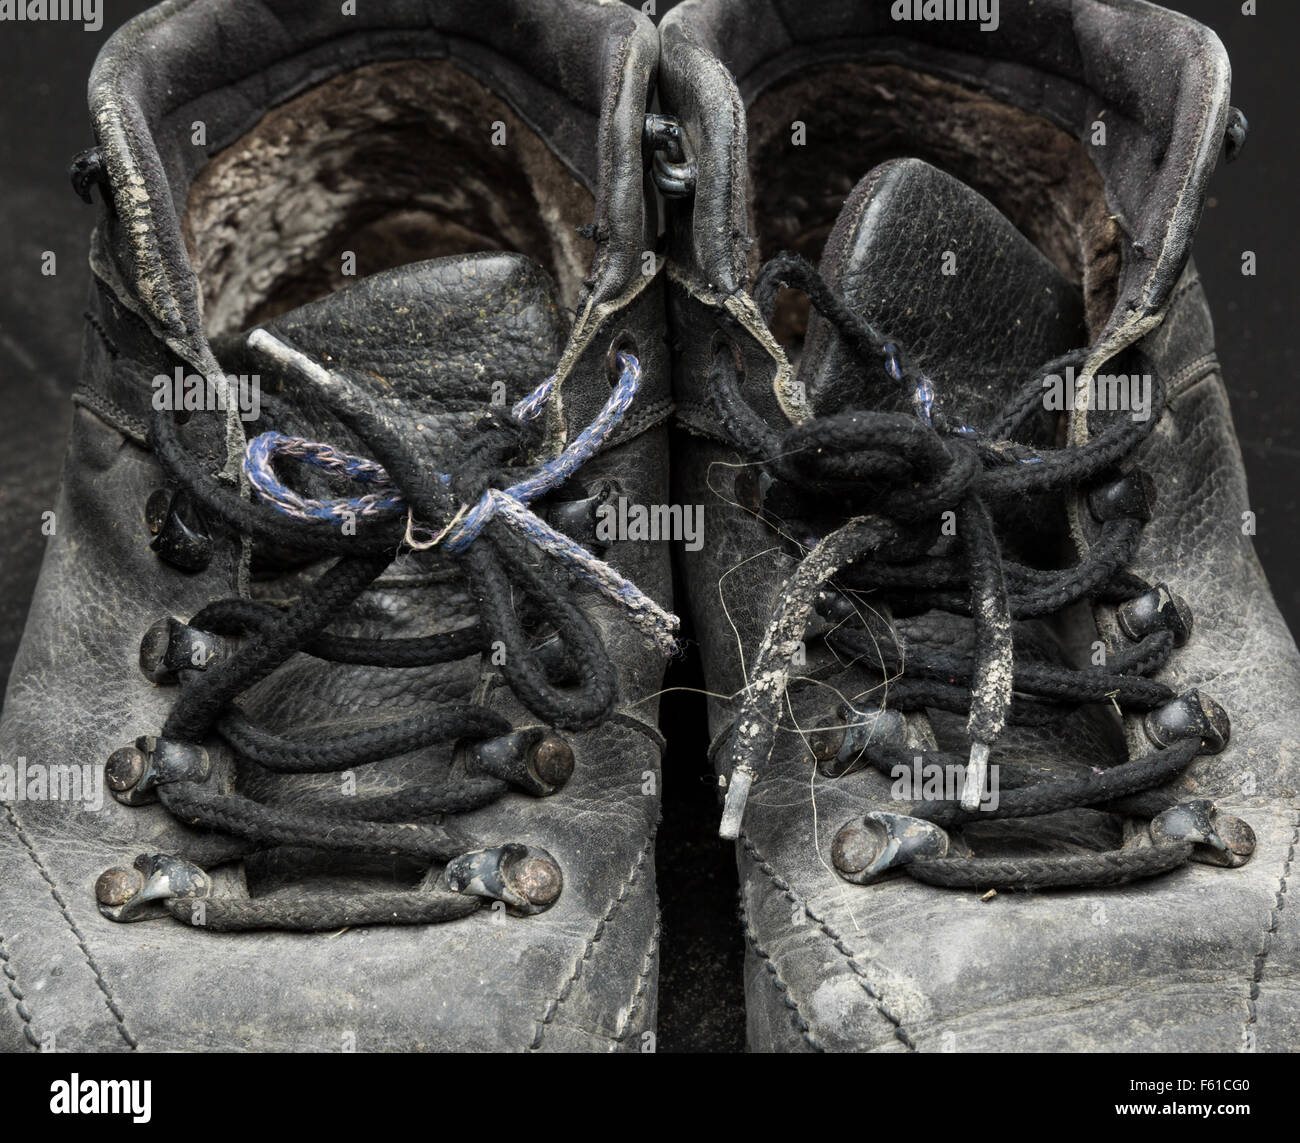 Old black worn out shoes closeup - Stock Image